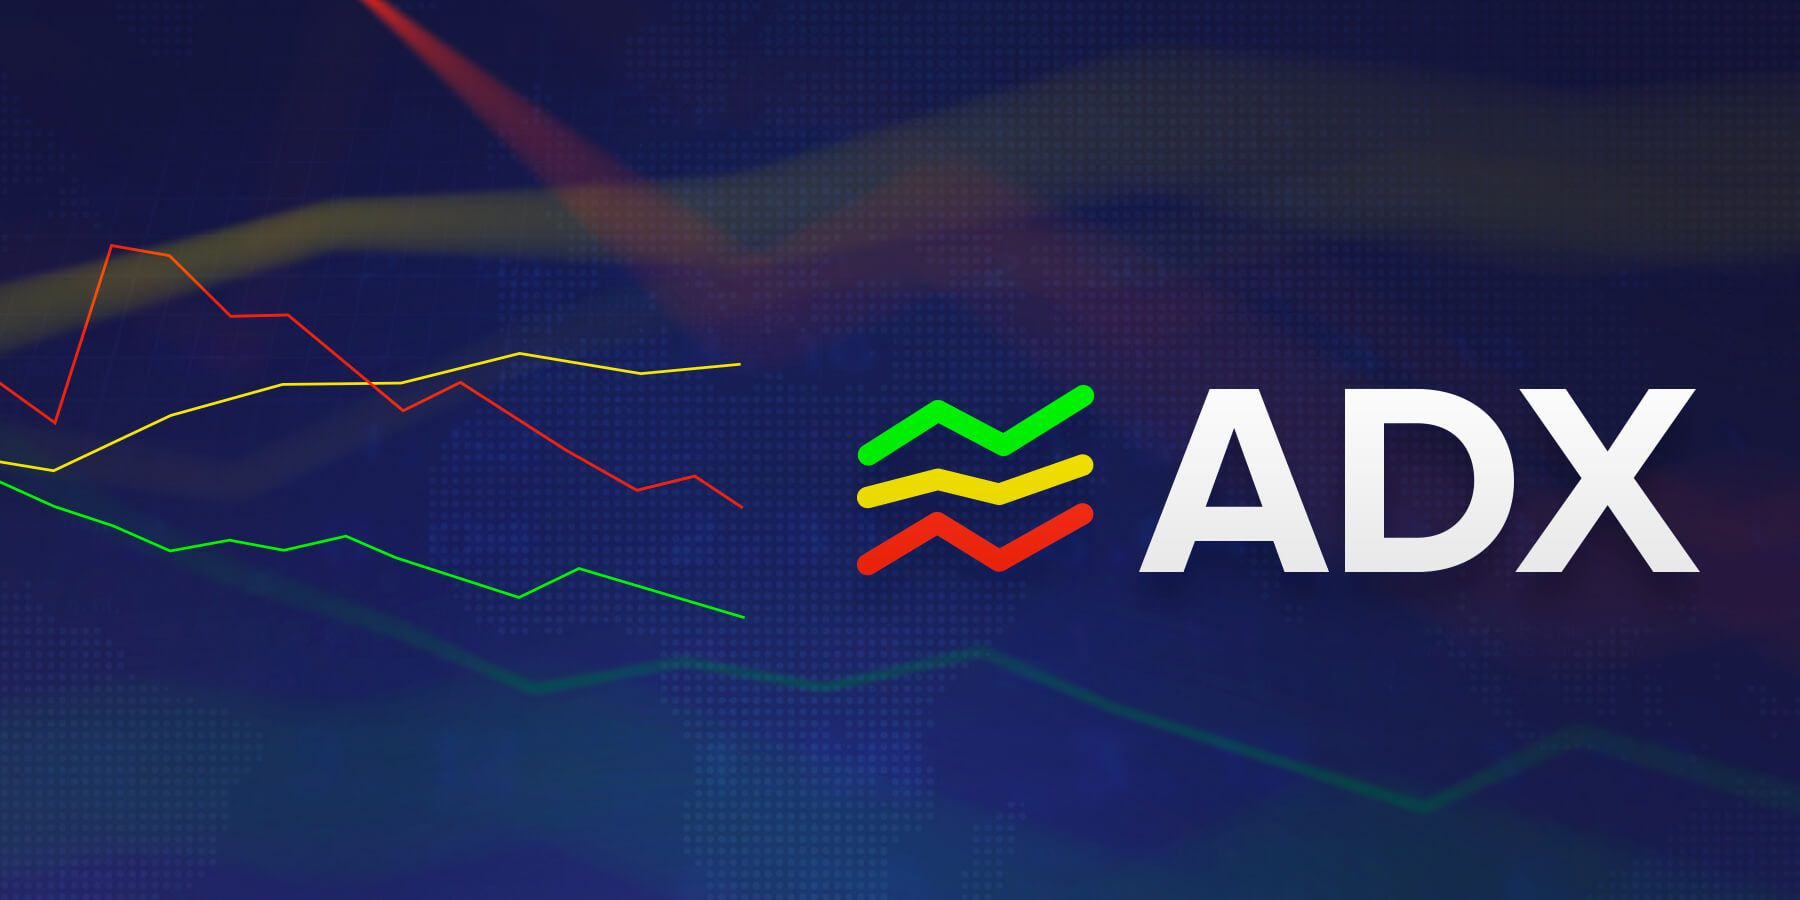 The Average Directional Index Adx Is A Technical Analysis Tool